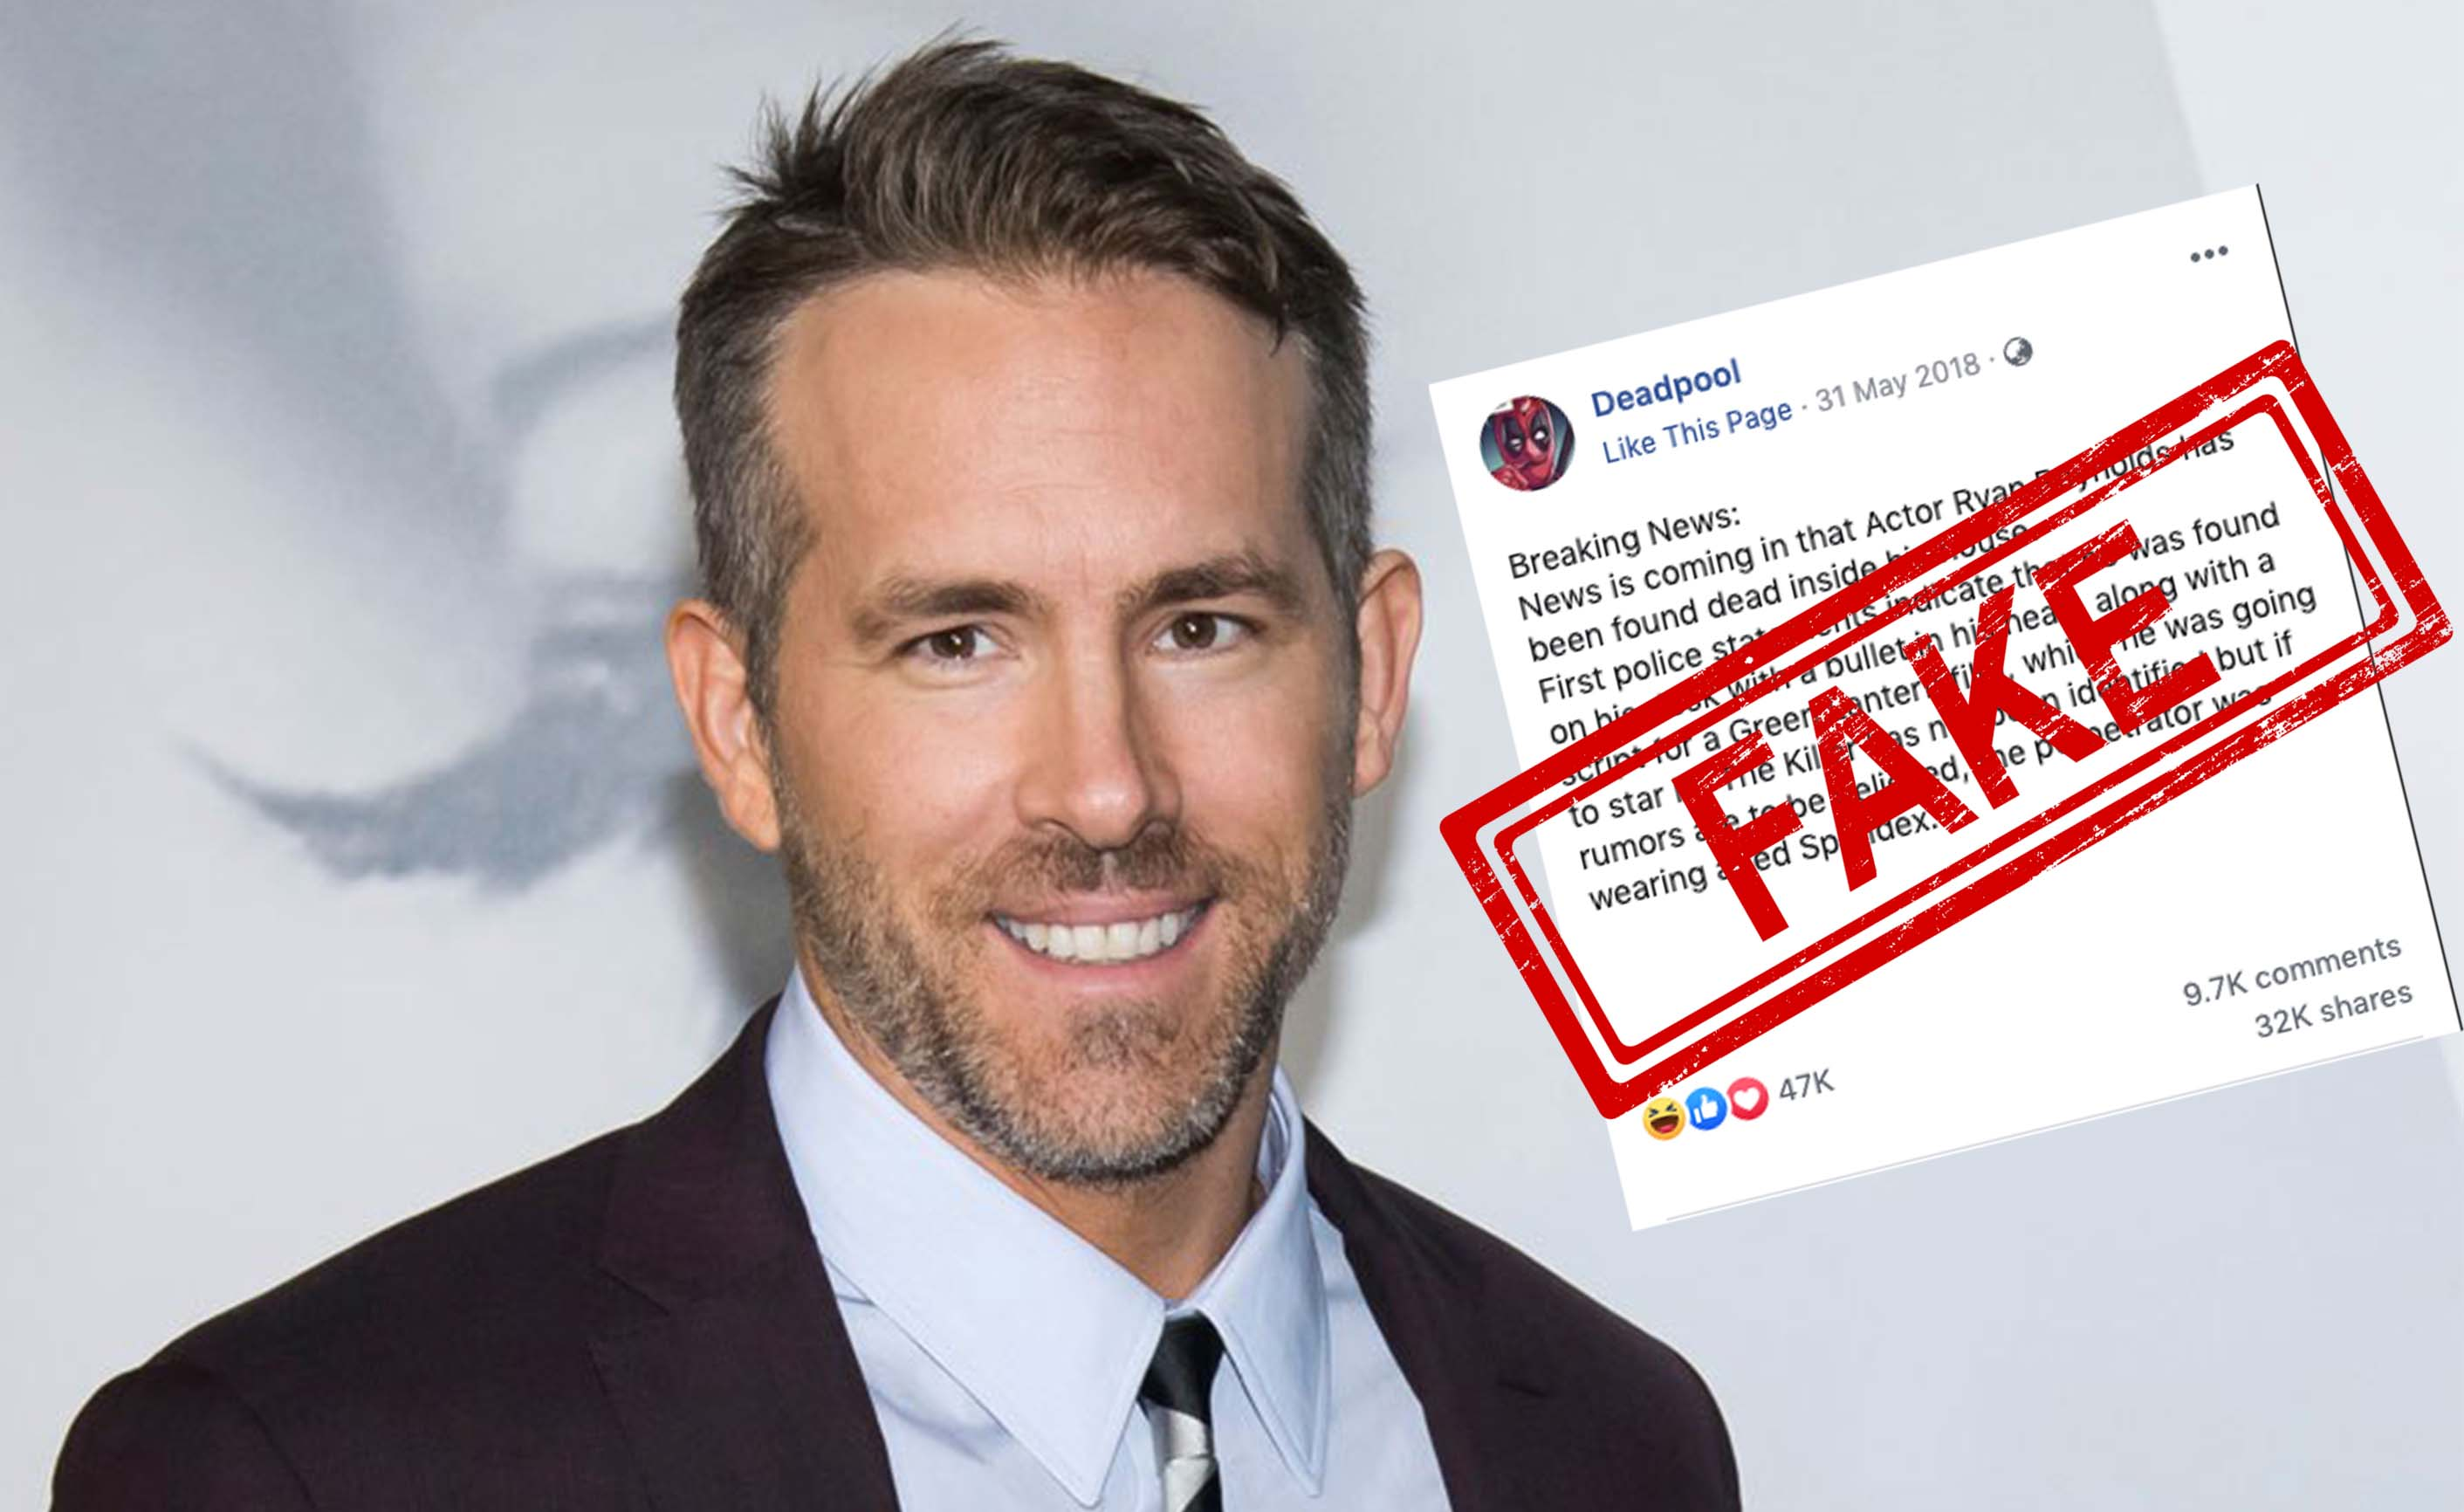 Don't believe this FAKE news of Ryan Reynolds found dead